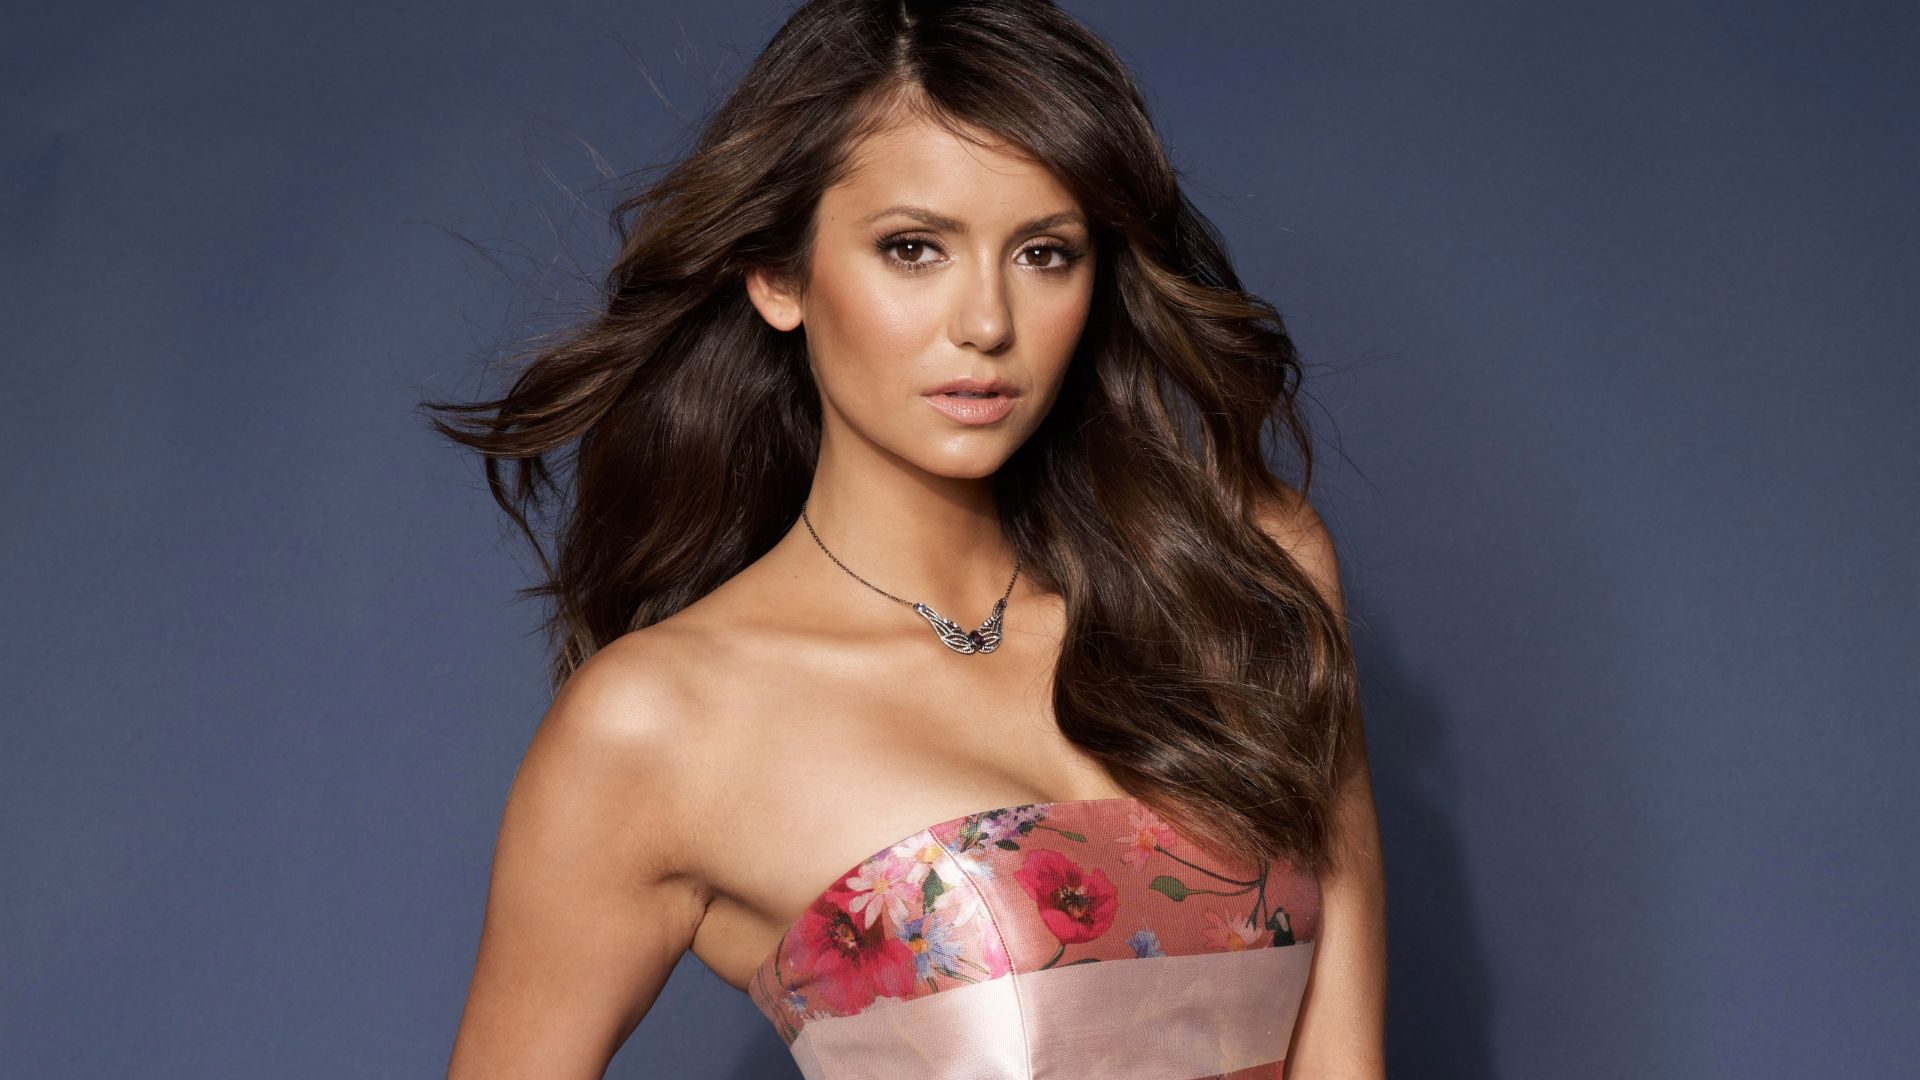 Nina Dobrev, beauty, 5k (horizontal)